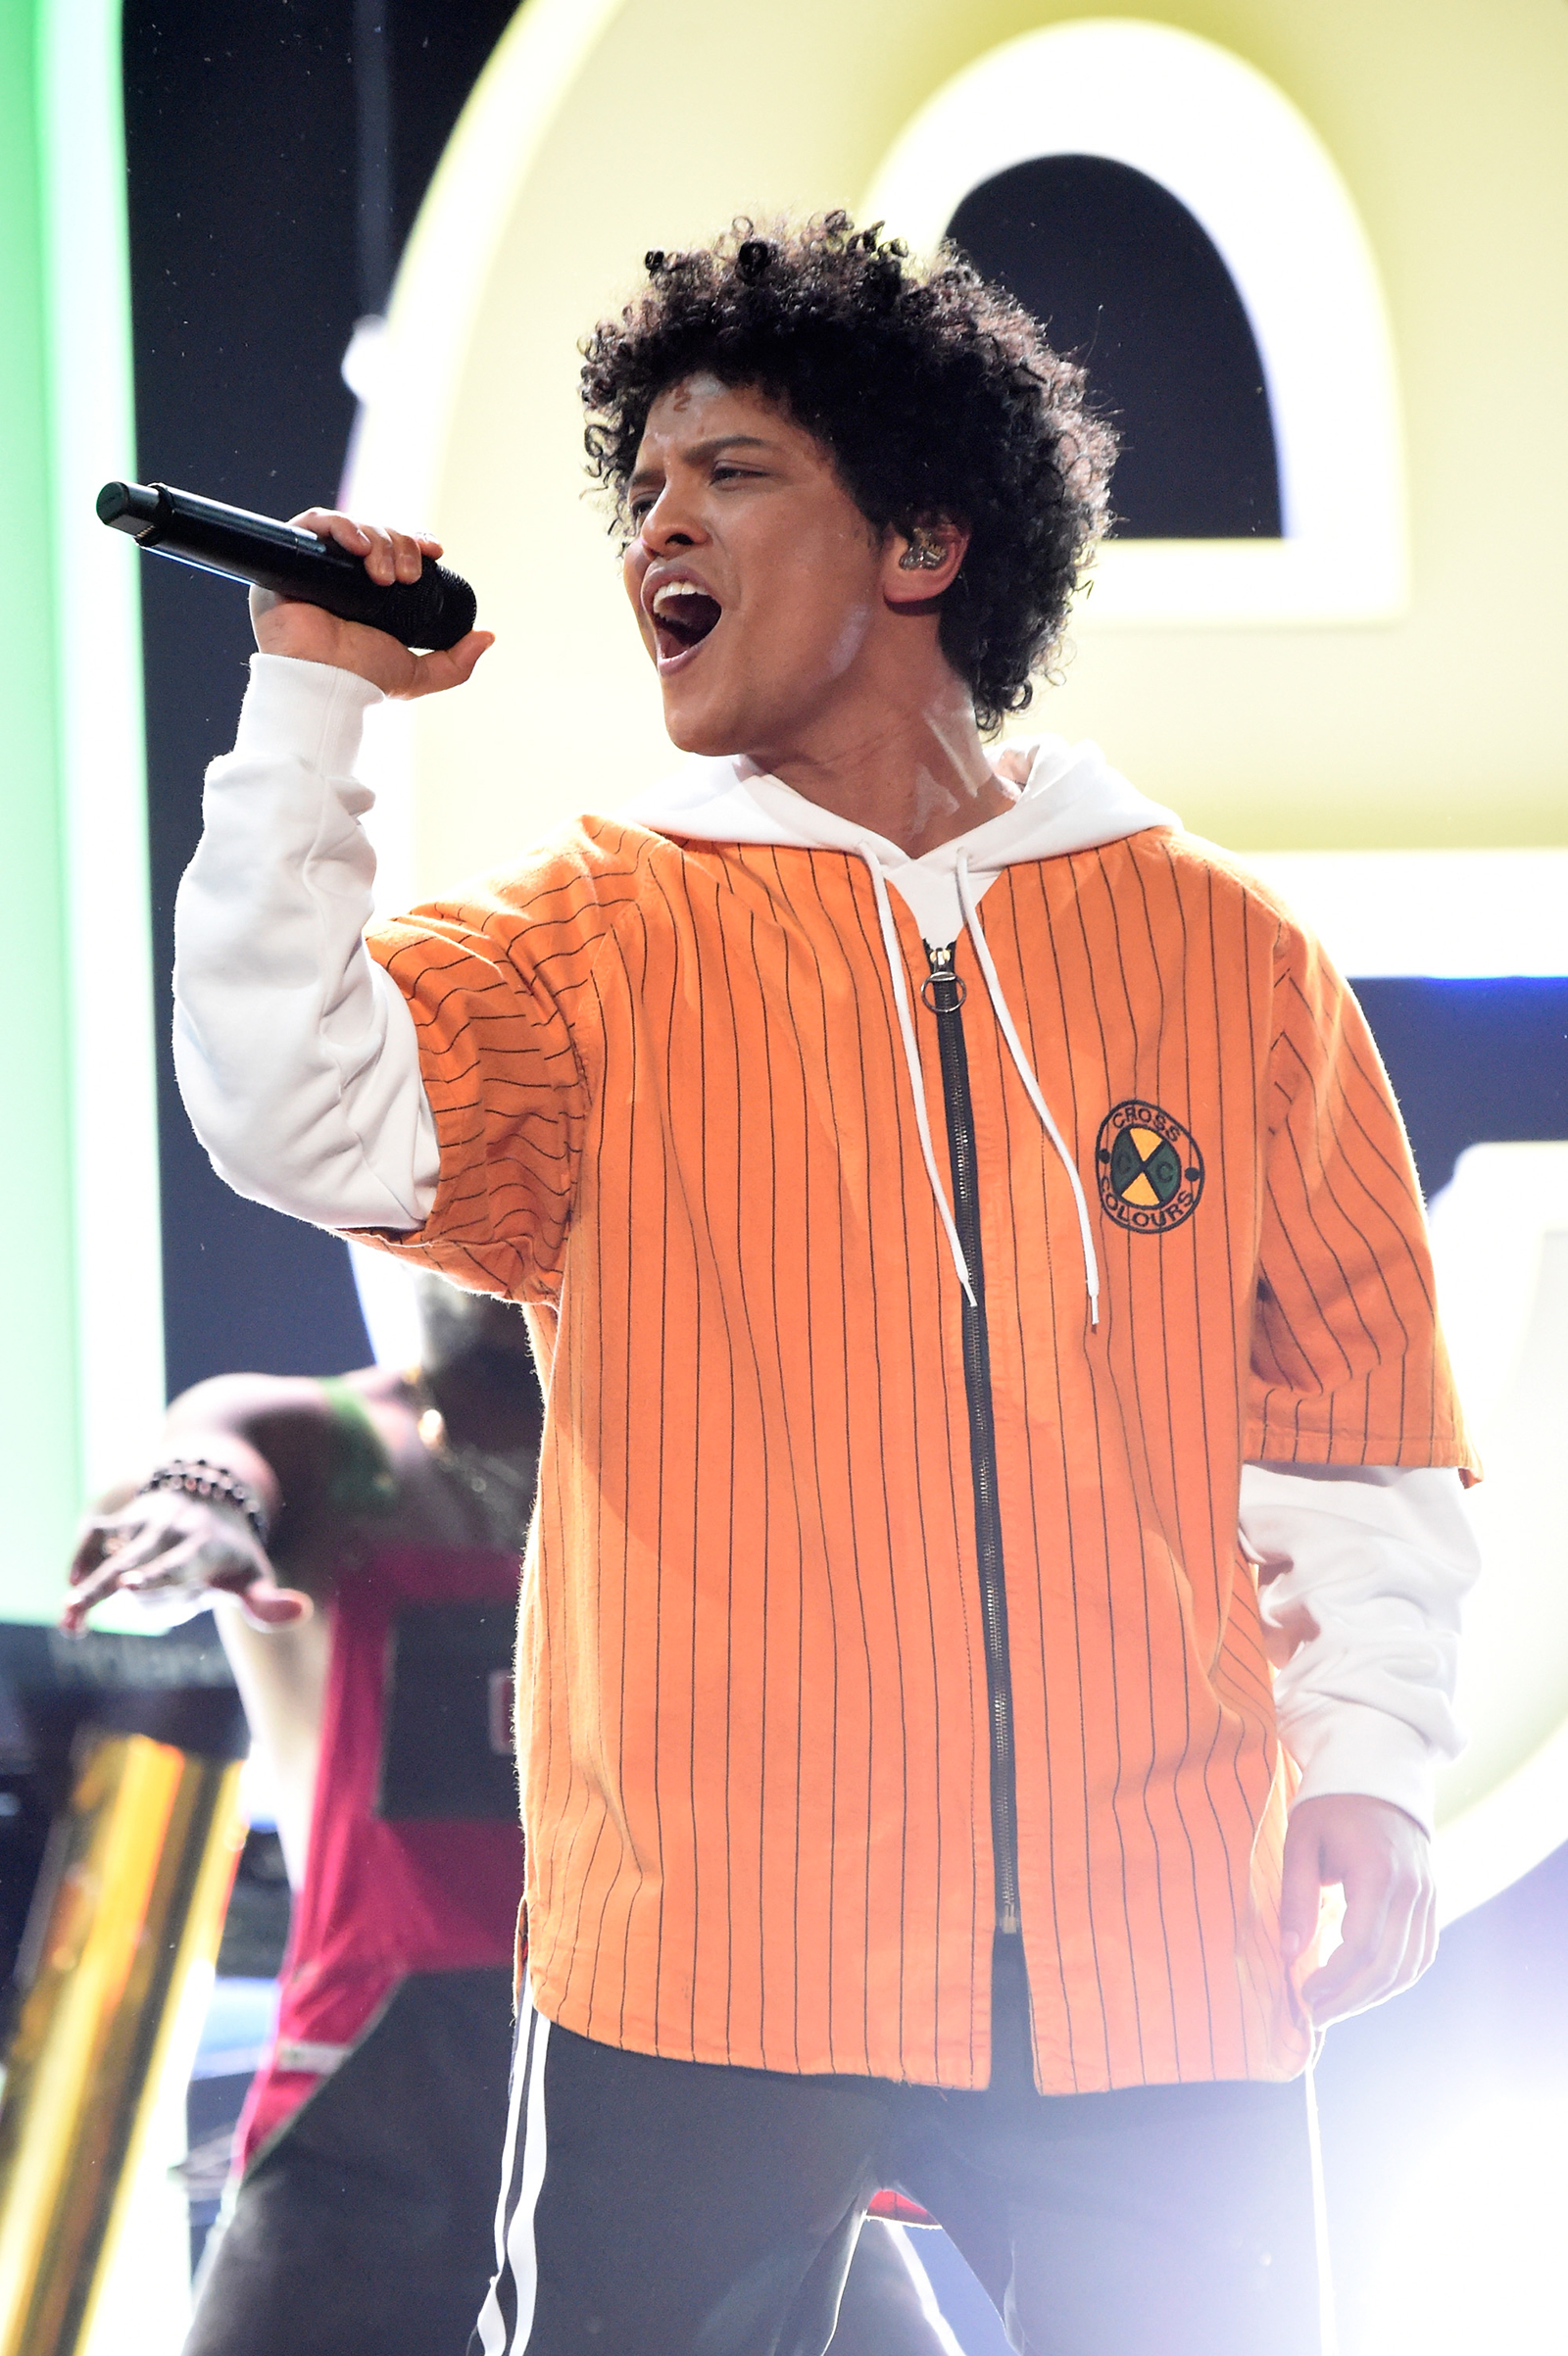 Bruno Mars defends himself against cultural appropriation accusations